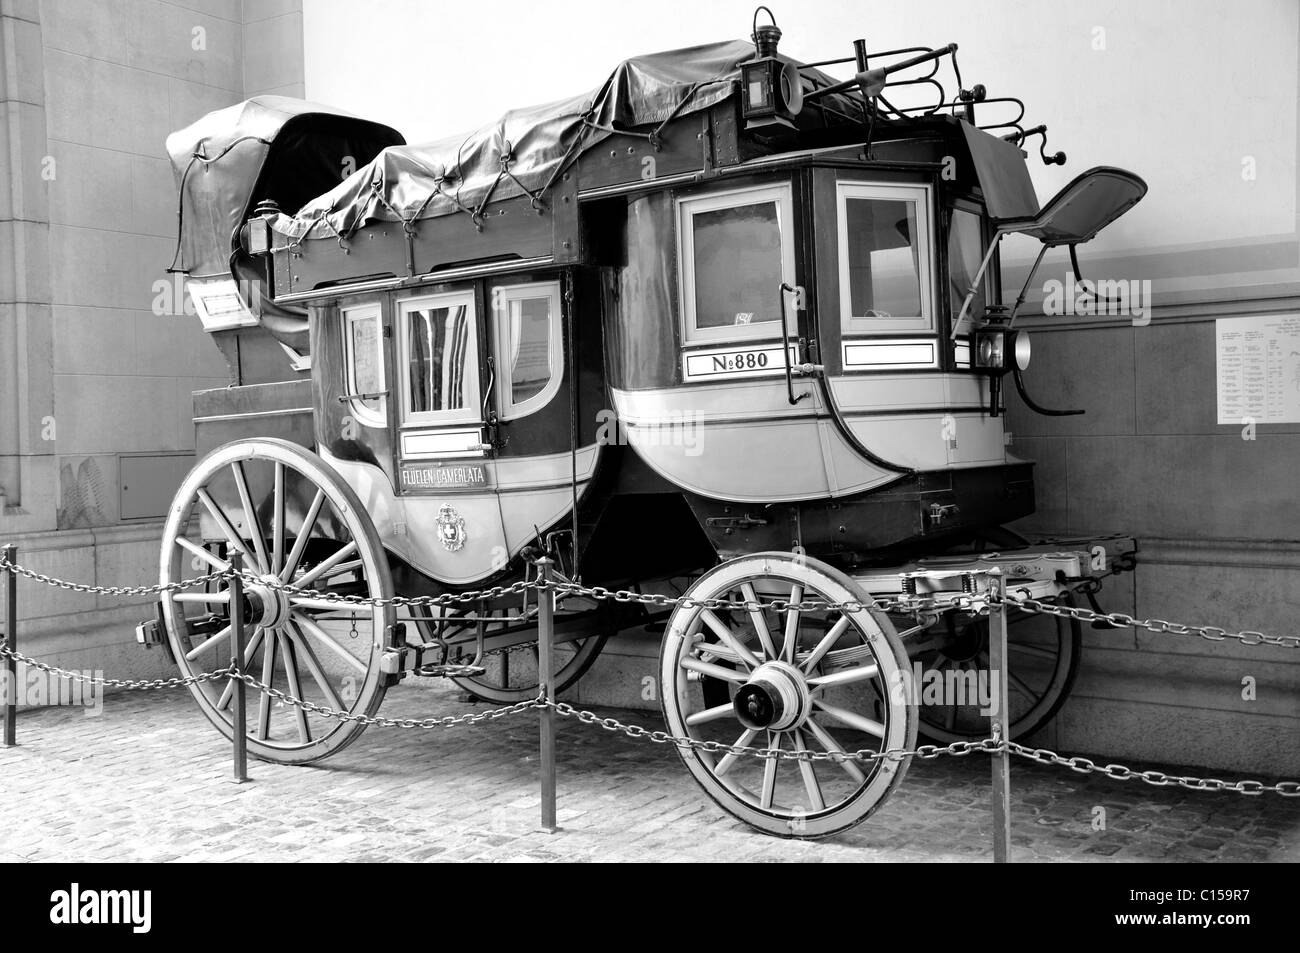 Mail carriage in Zurich, Switzerland - Stock Image